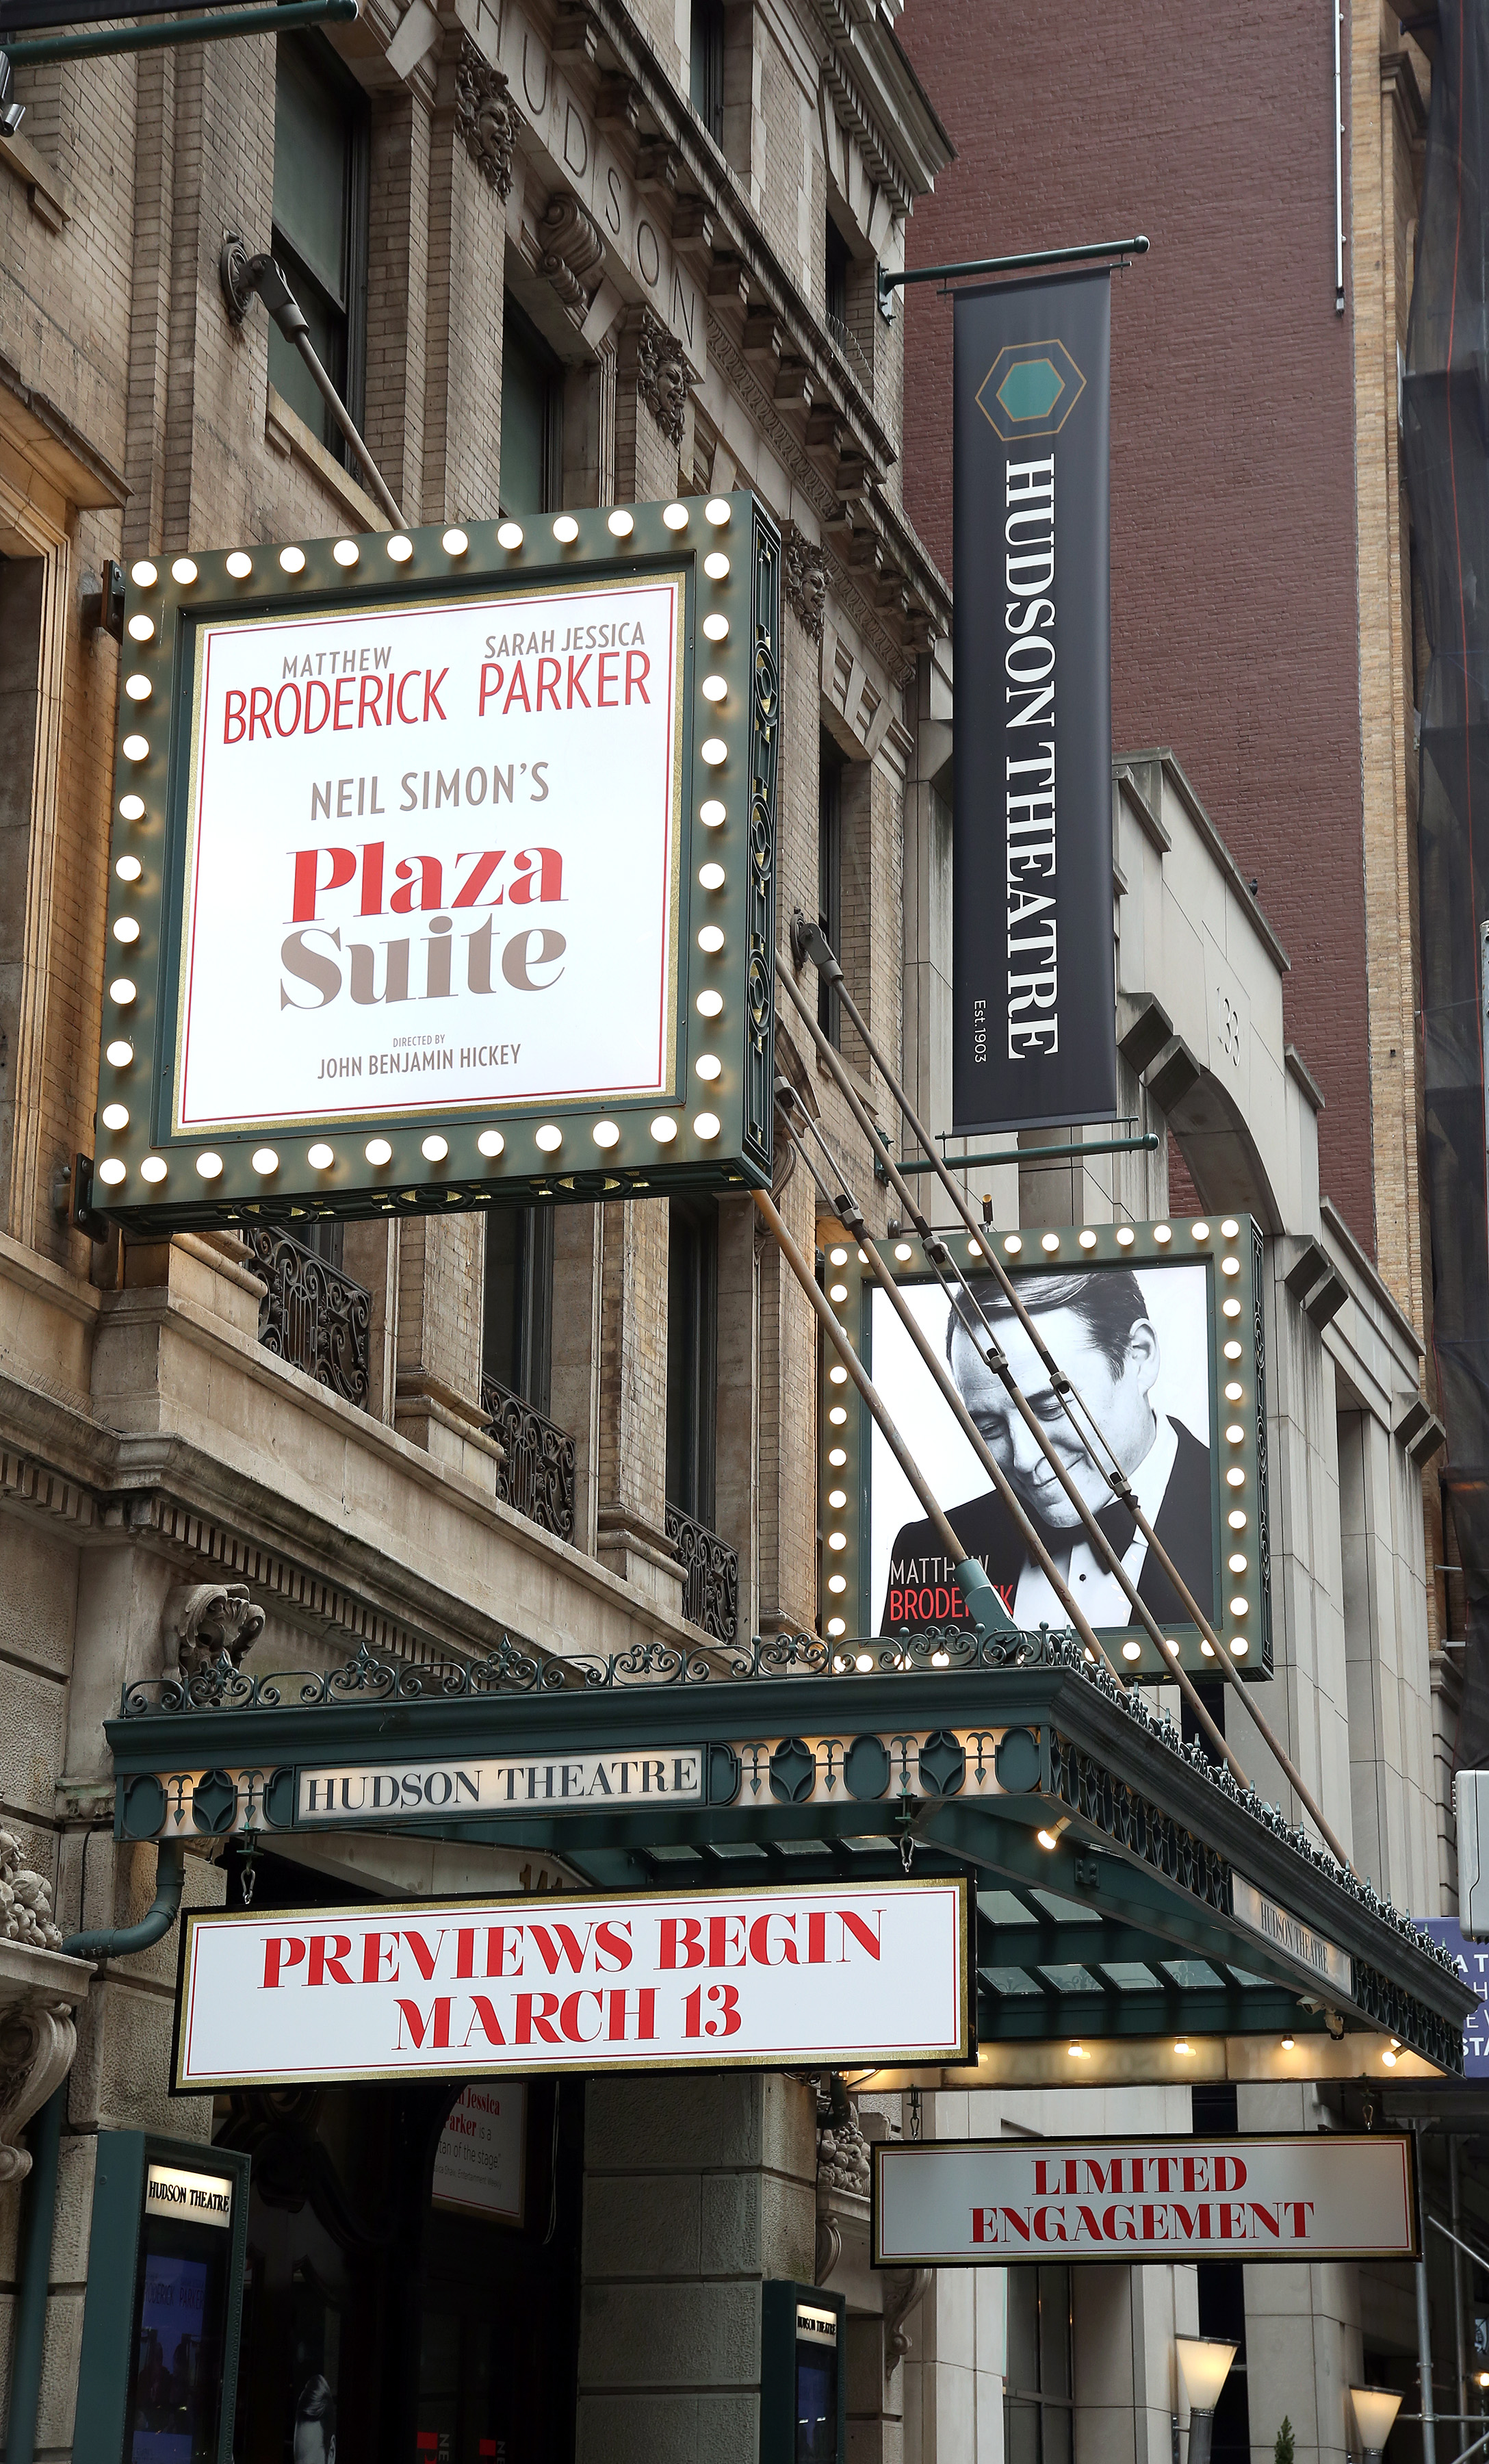 Hudson Theatre (Broadway) - Theater Information Marquee